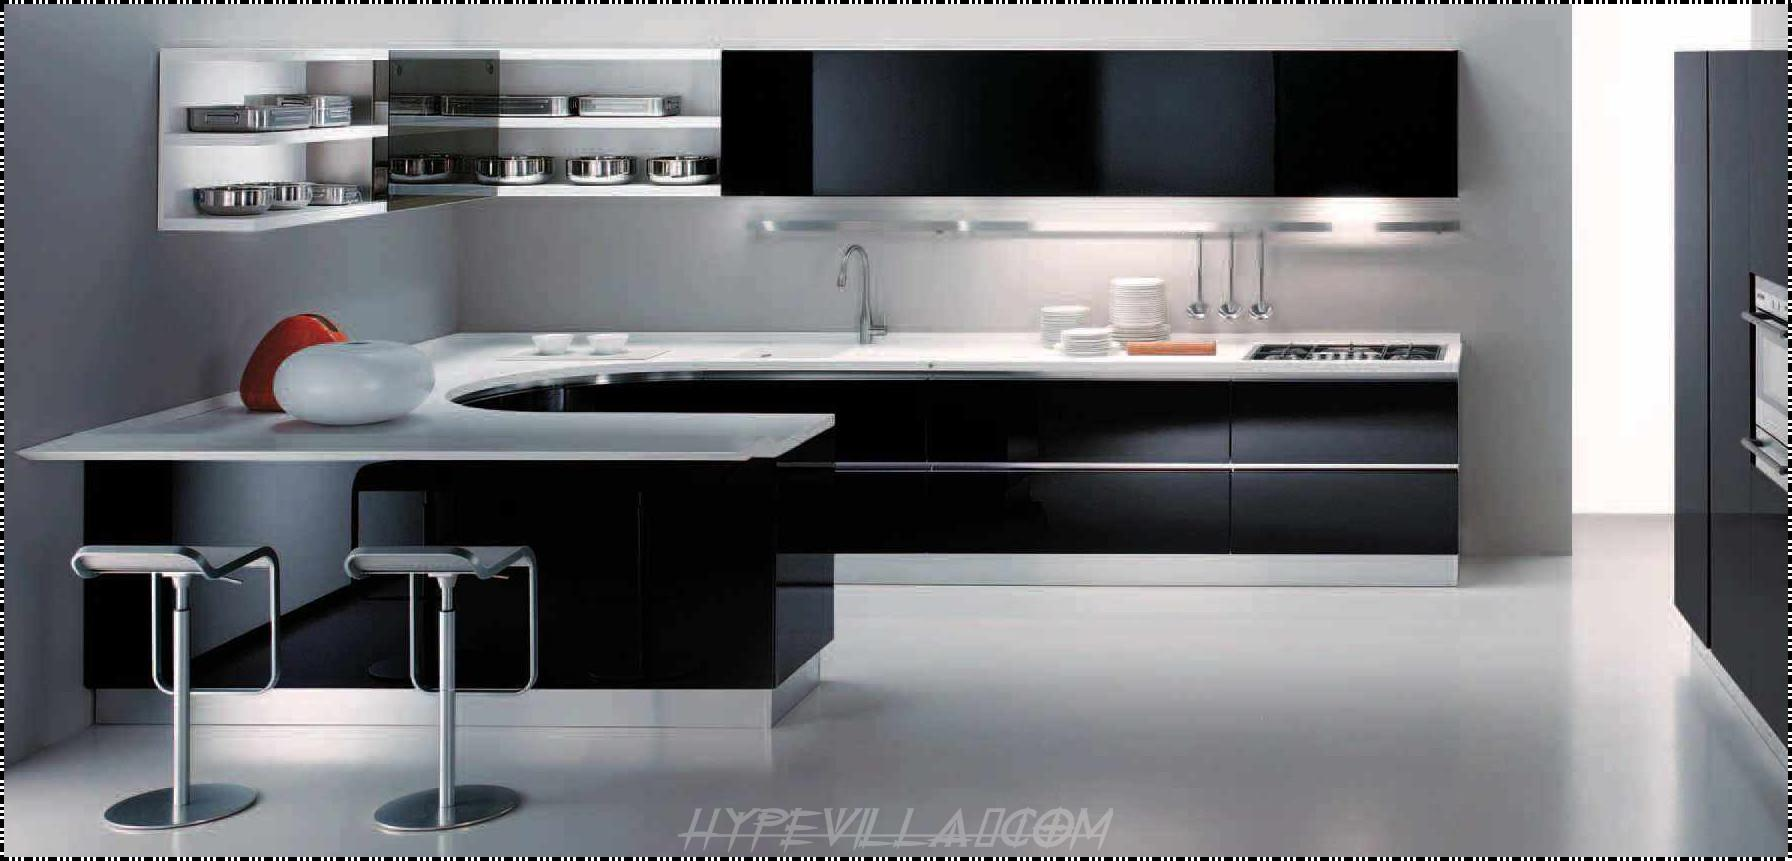 Professionally Kitchen Styles Modern Home That Everyone Will Want To Live Inside Photographs Decoratorist